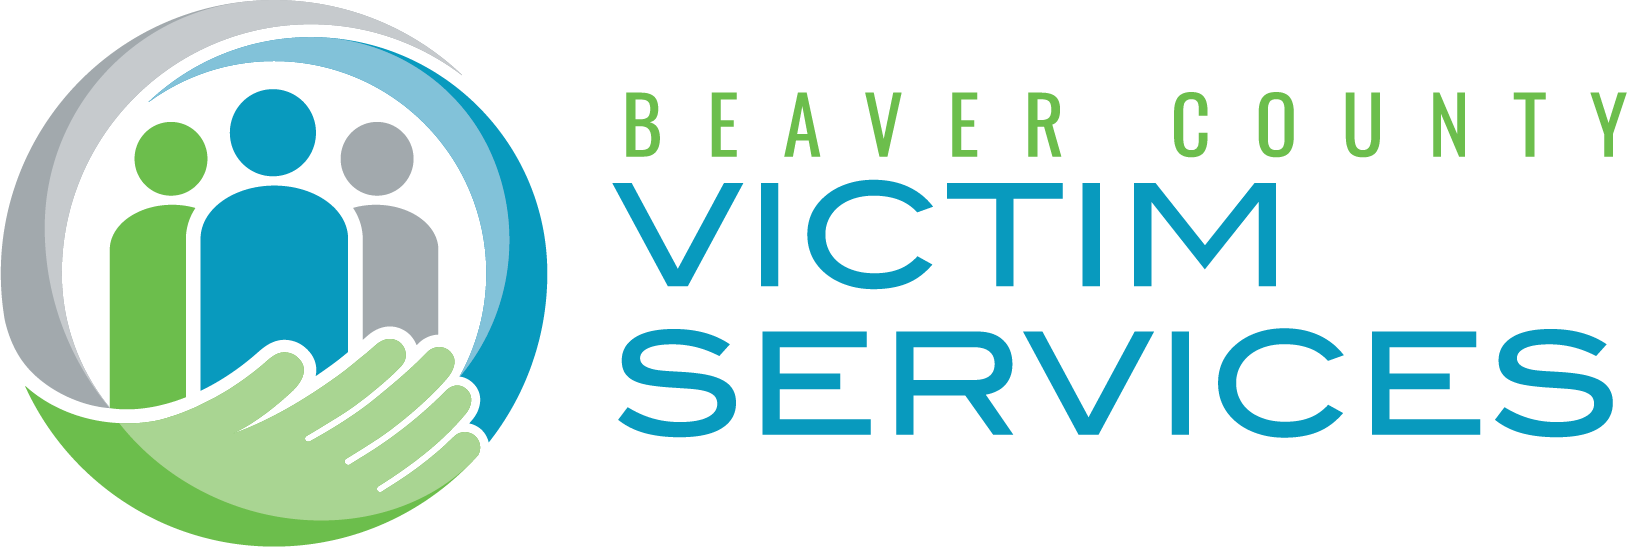 Beaver County Victim Services Association